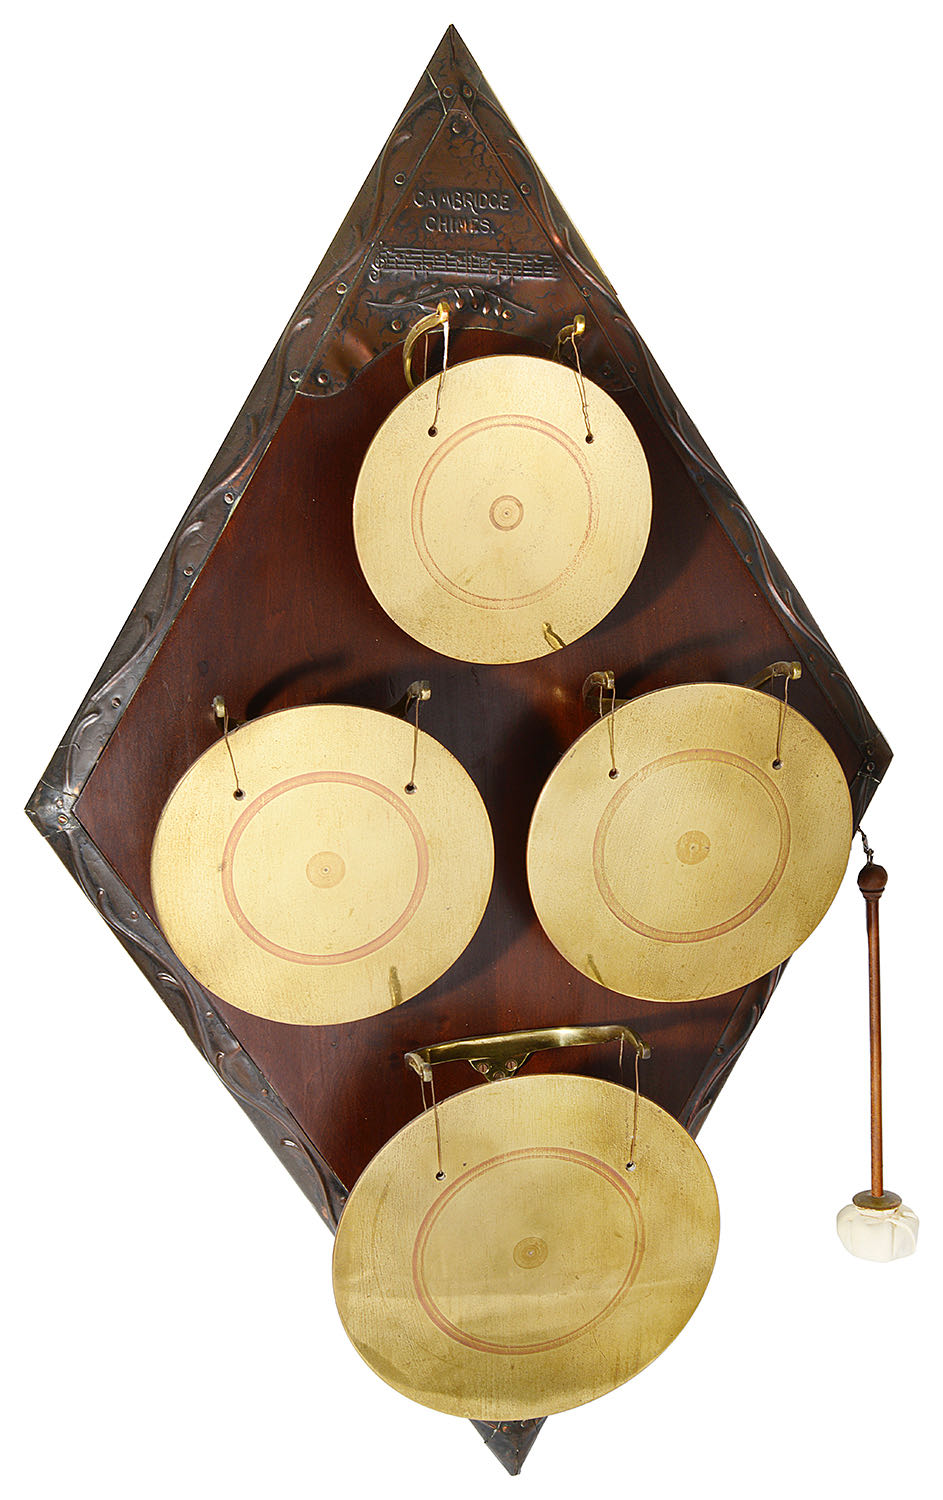 Lot 4 - An Arts and Crafts 'Cambridge Chimes' wall mounted dinner gong